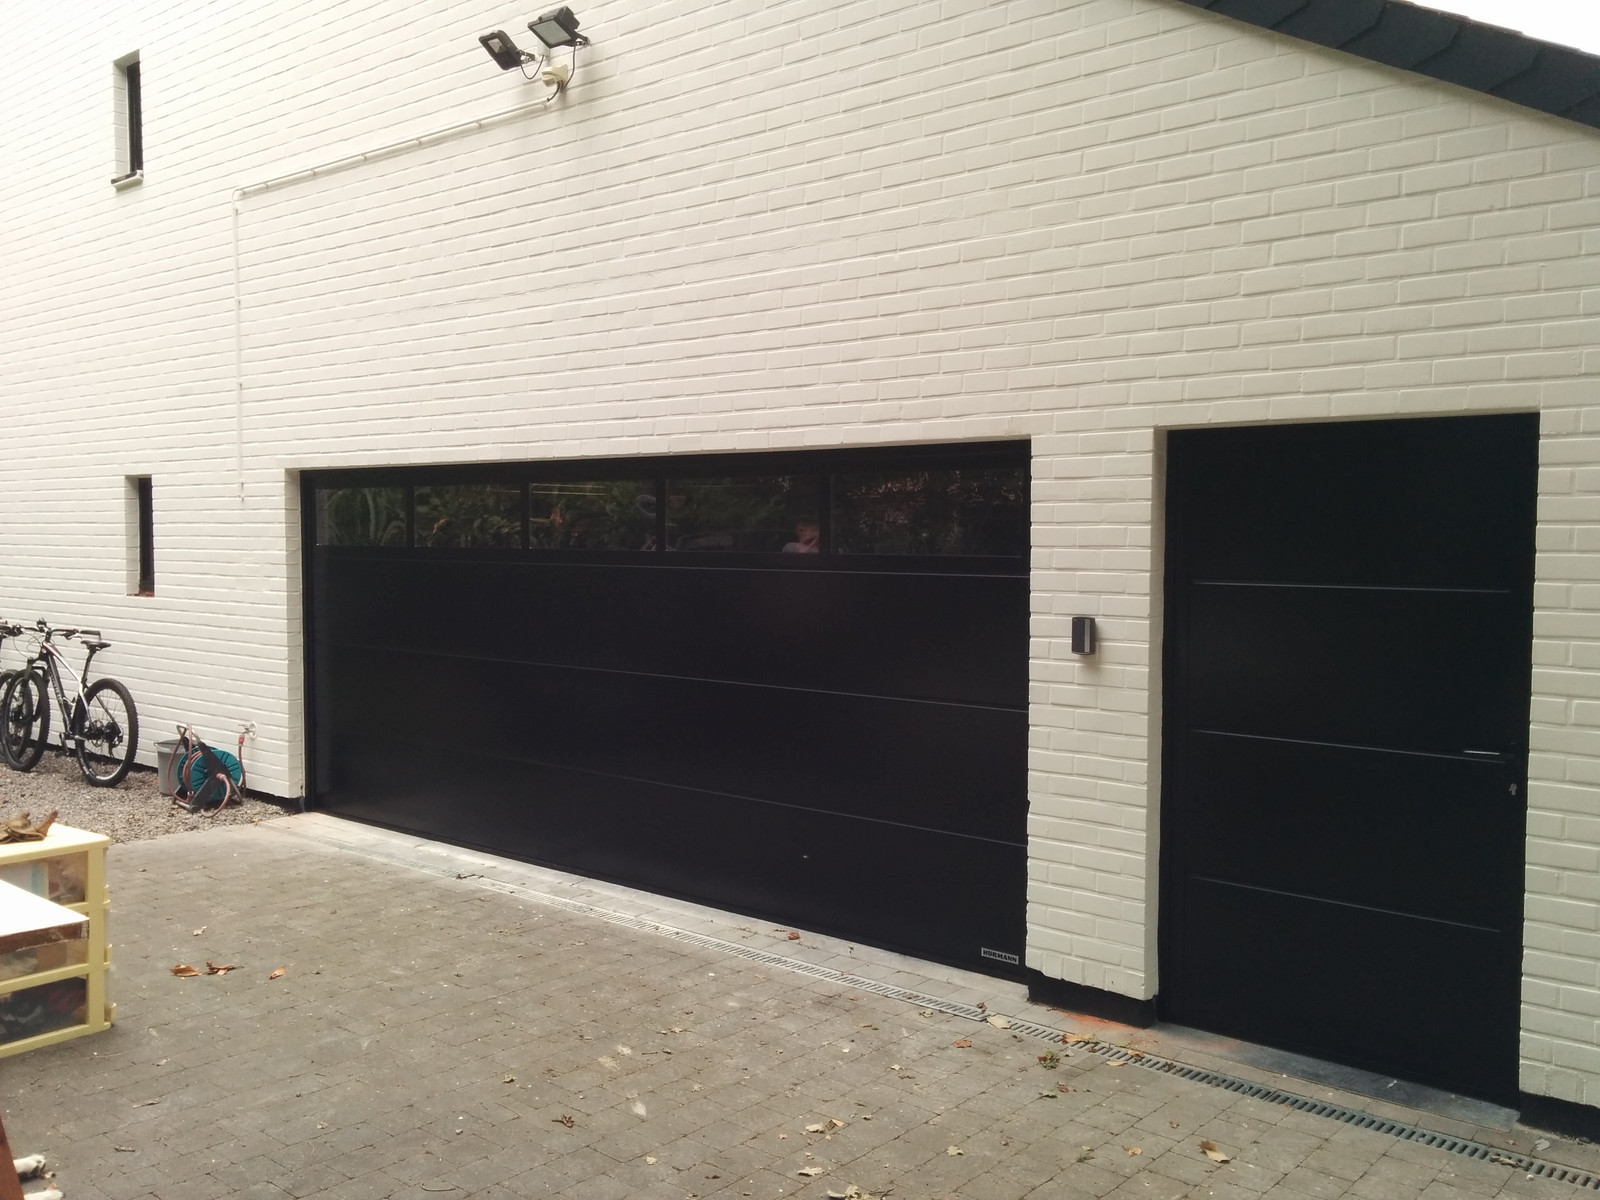 Portes De Garage Hörmann Grez Doiceau Id Door Services